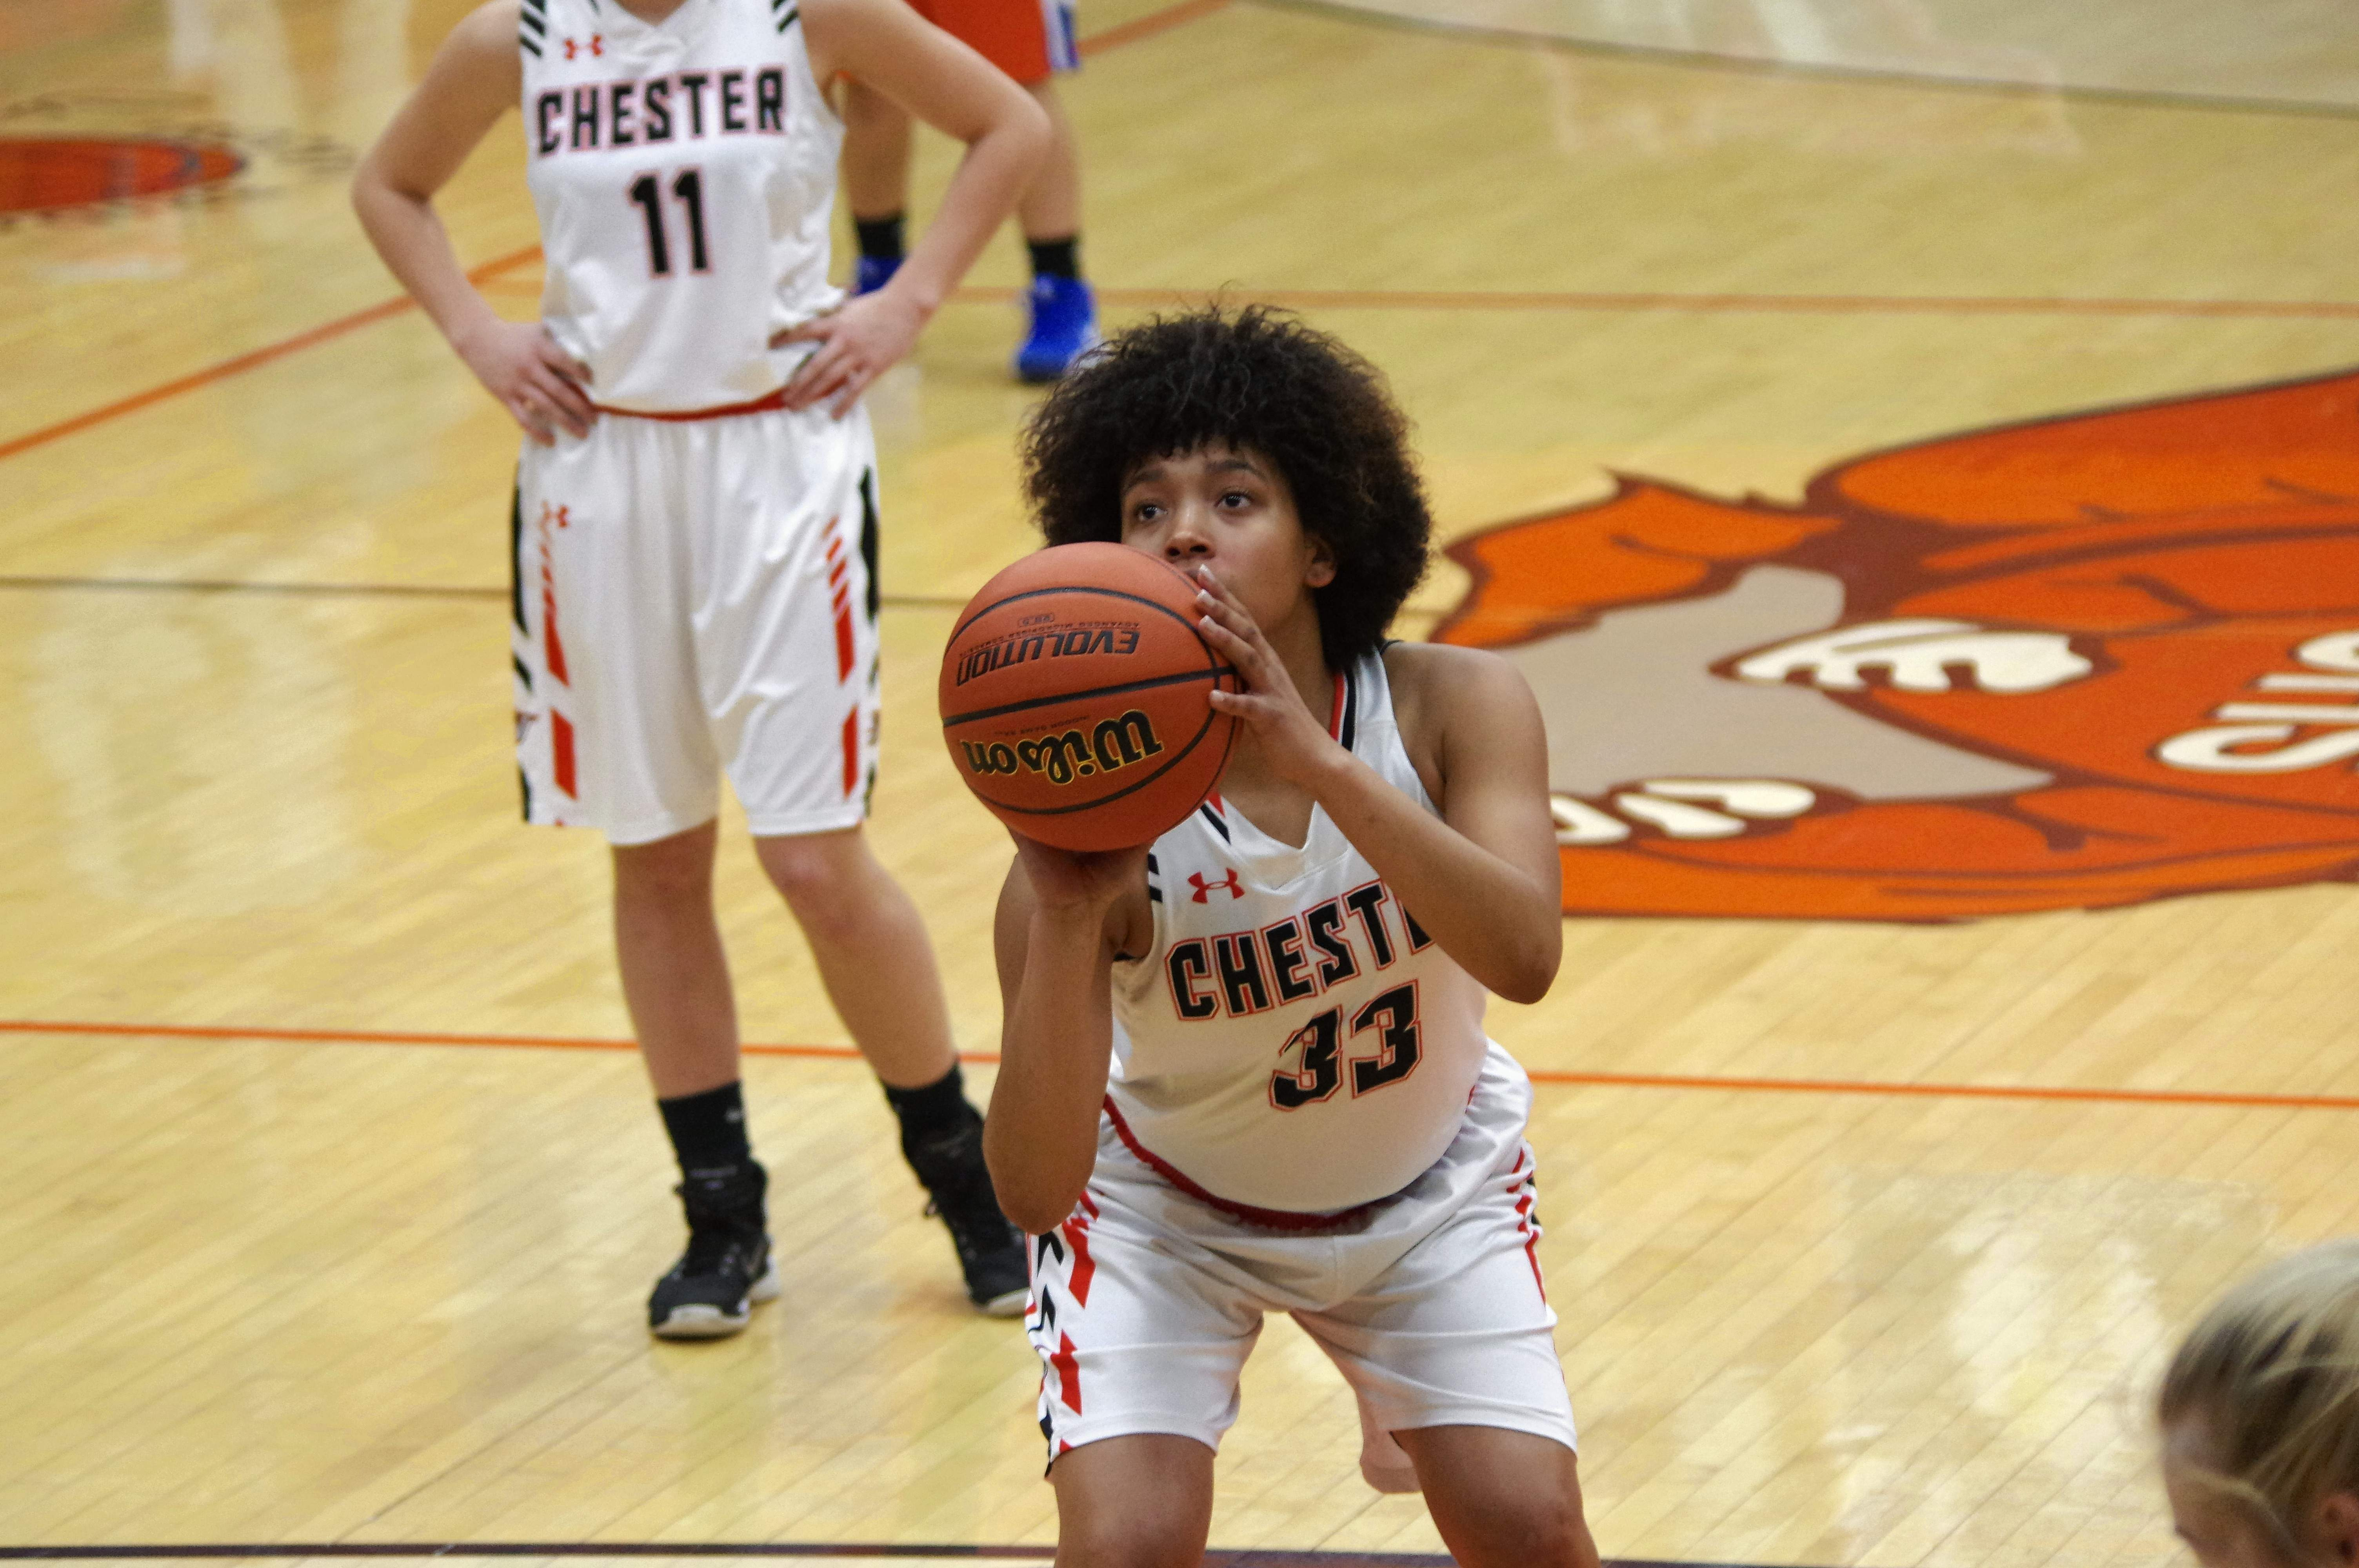 Destiny Williams eyes the basket early in the first quarter of the CHS vs Christopher game on Jan. 28.